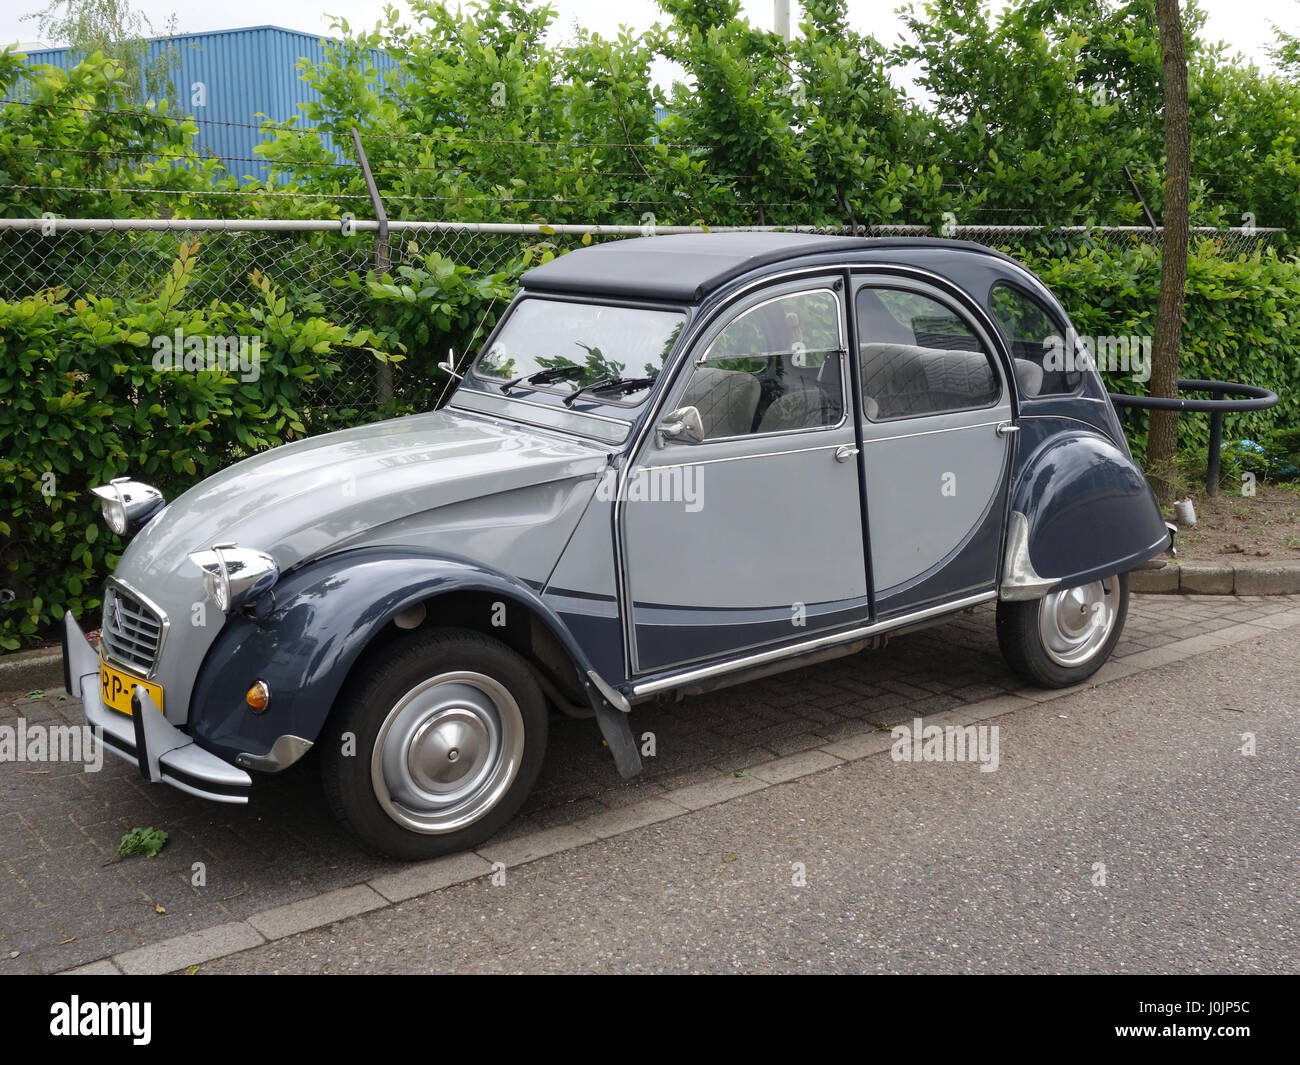 Citroen 2cv Deux Chevaux In Attractive Dark And Light Grey Colour